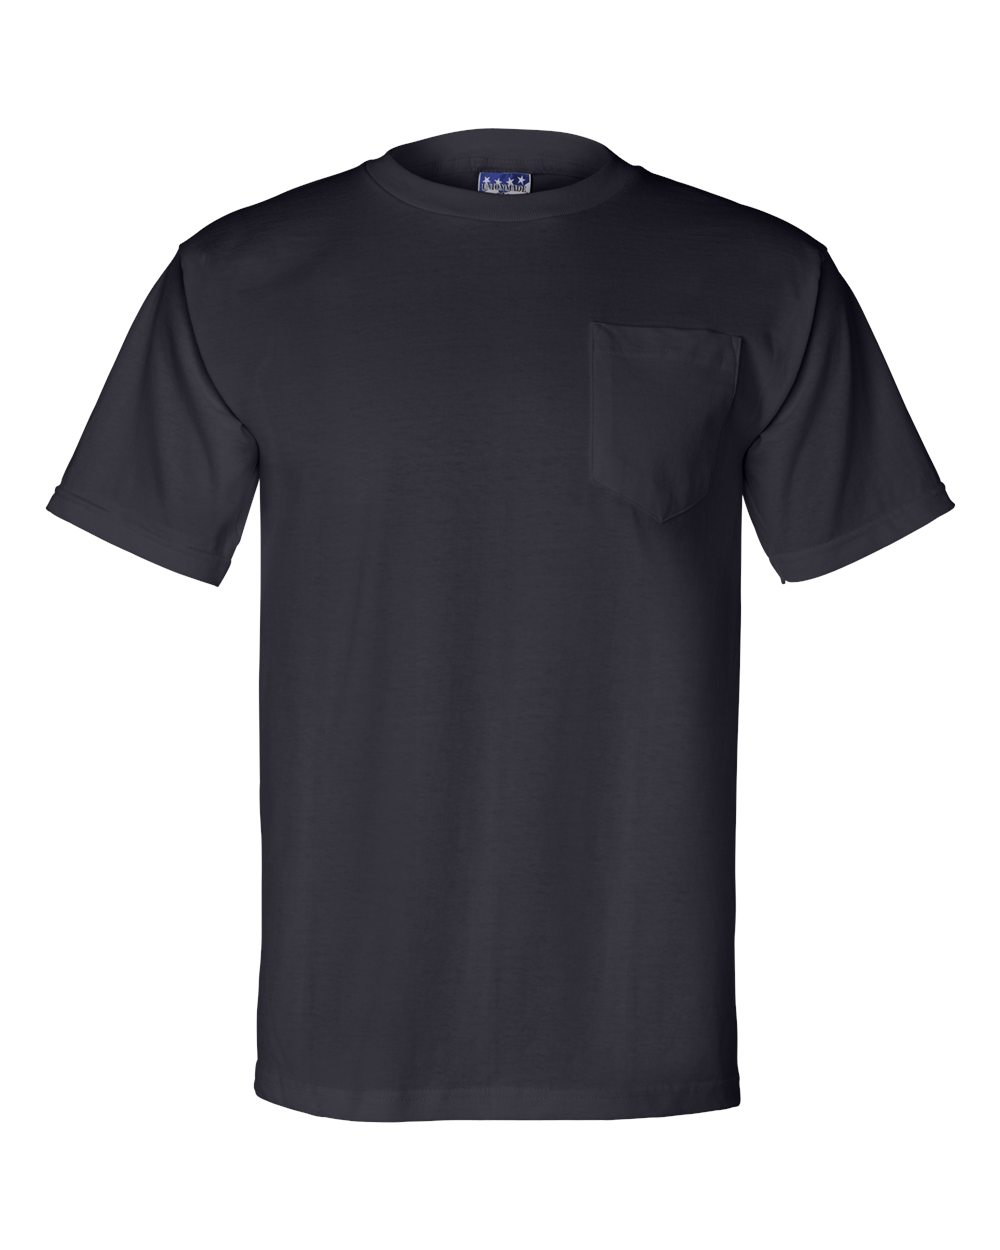 Bayside-Mens-Union-Made-Short-Sleeve-T-Shirt-with-a-Pocket-3015-up-to-3XL thumbnail 15